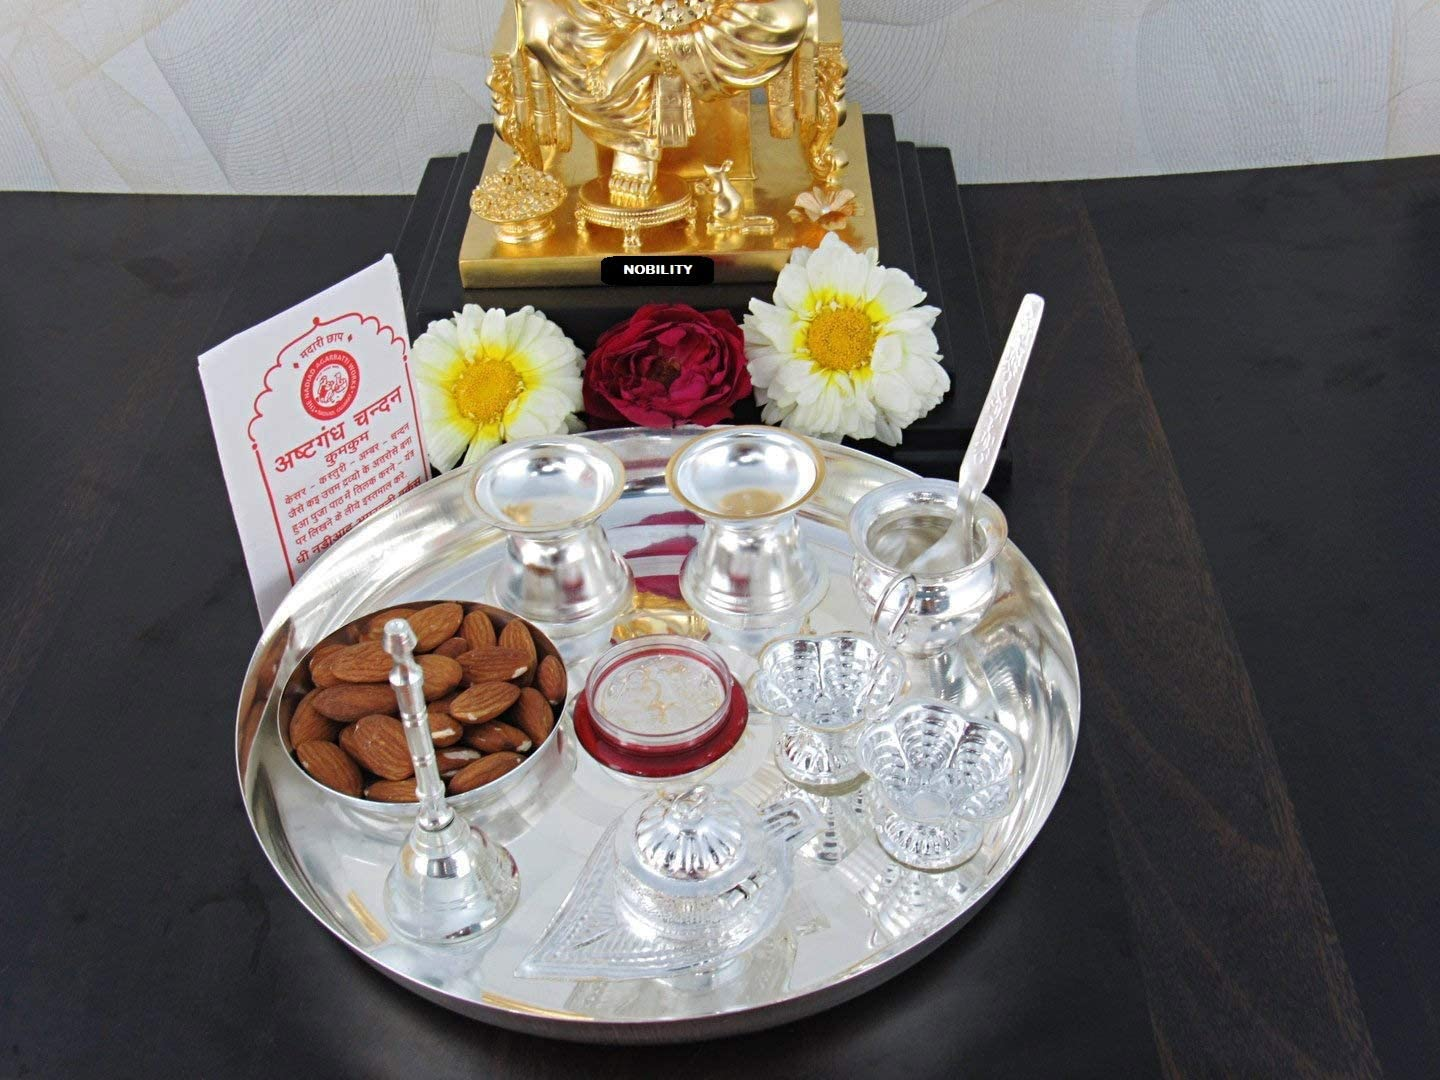 Wedding Return Gift Size: 12 Inch Nobility Silver Plated Pooja Thali Set Puja Thali Decorative Classic Occasional Gift